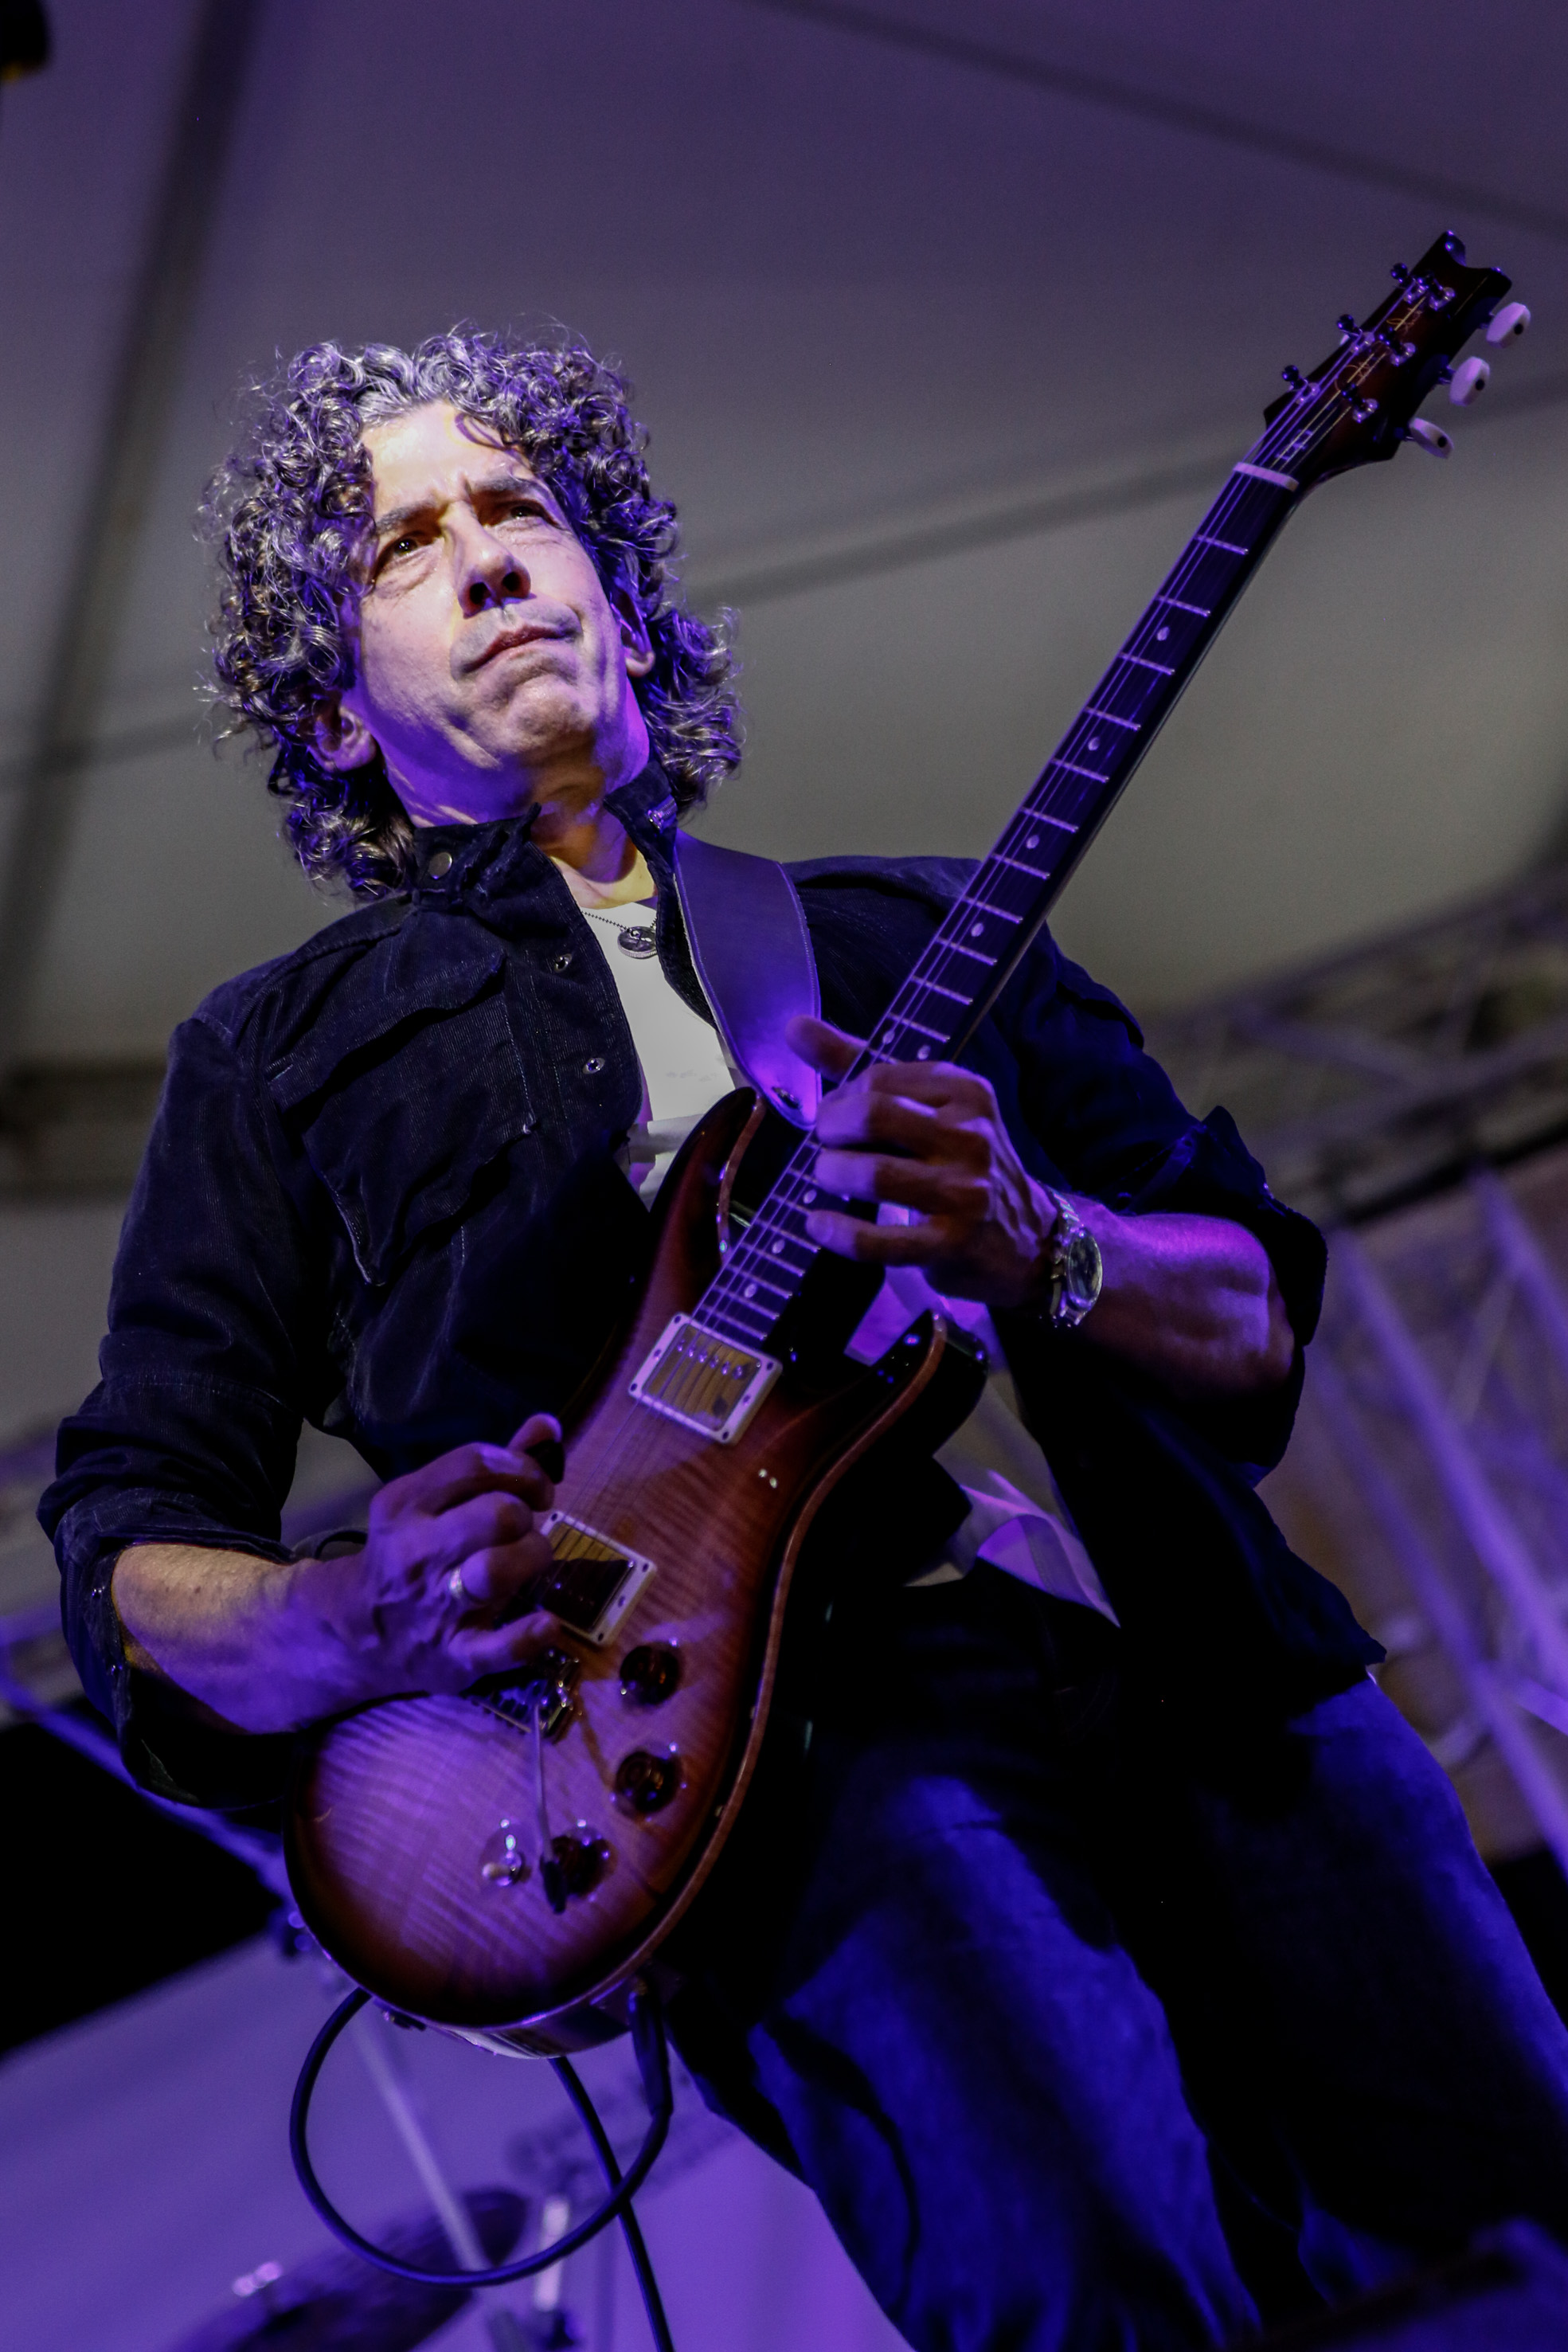 David Grissom – Chiari Blues Festival 2019